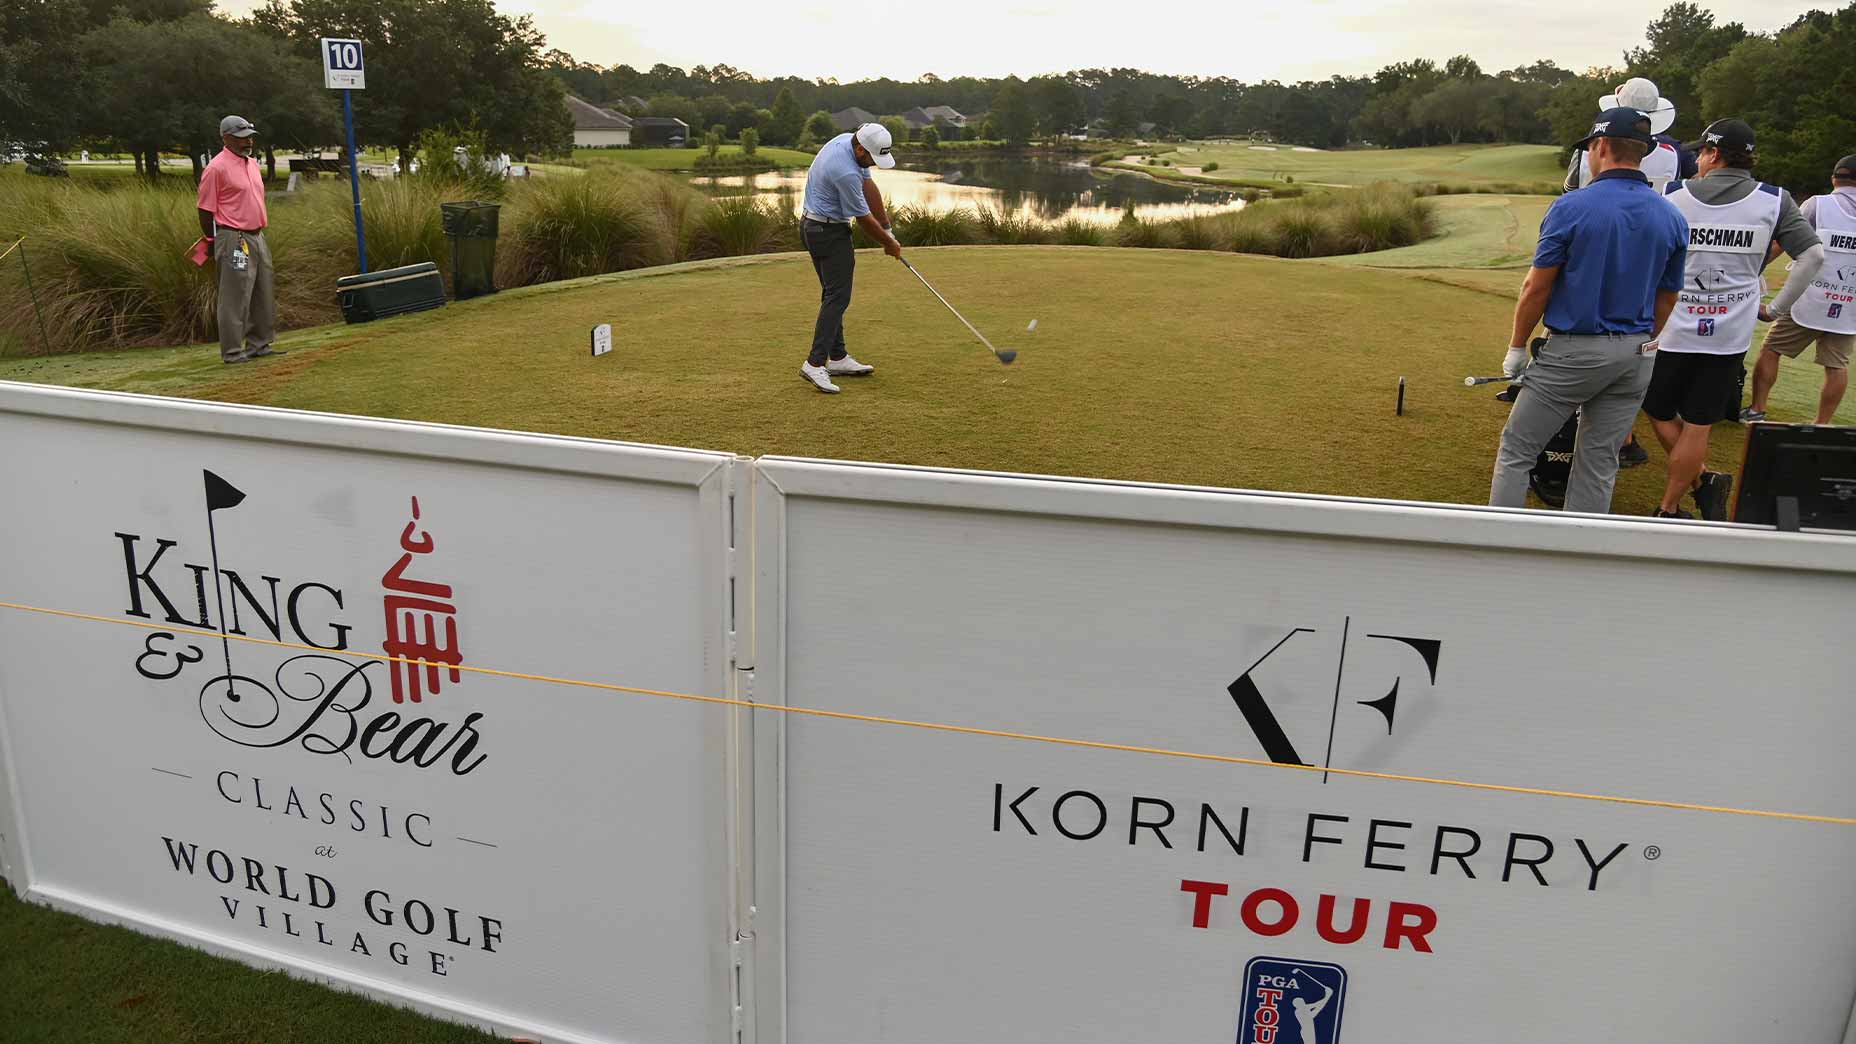 players tee off korn ferry tour